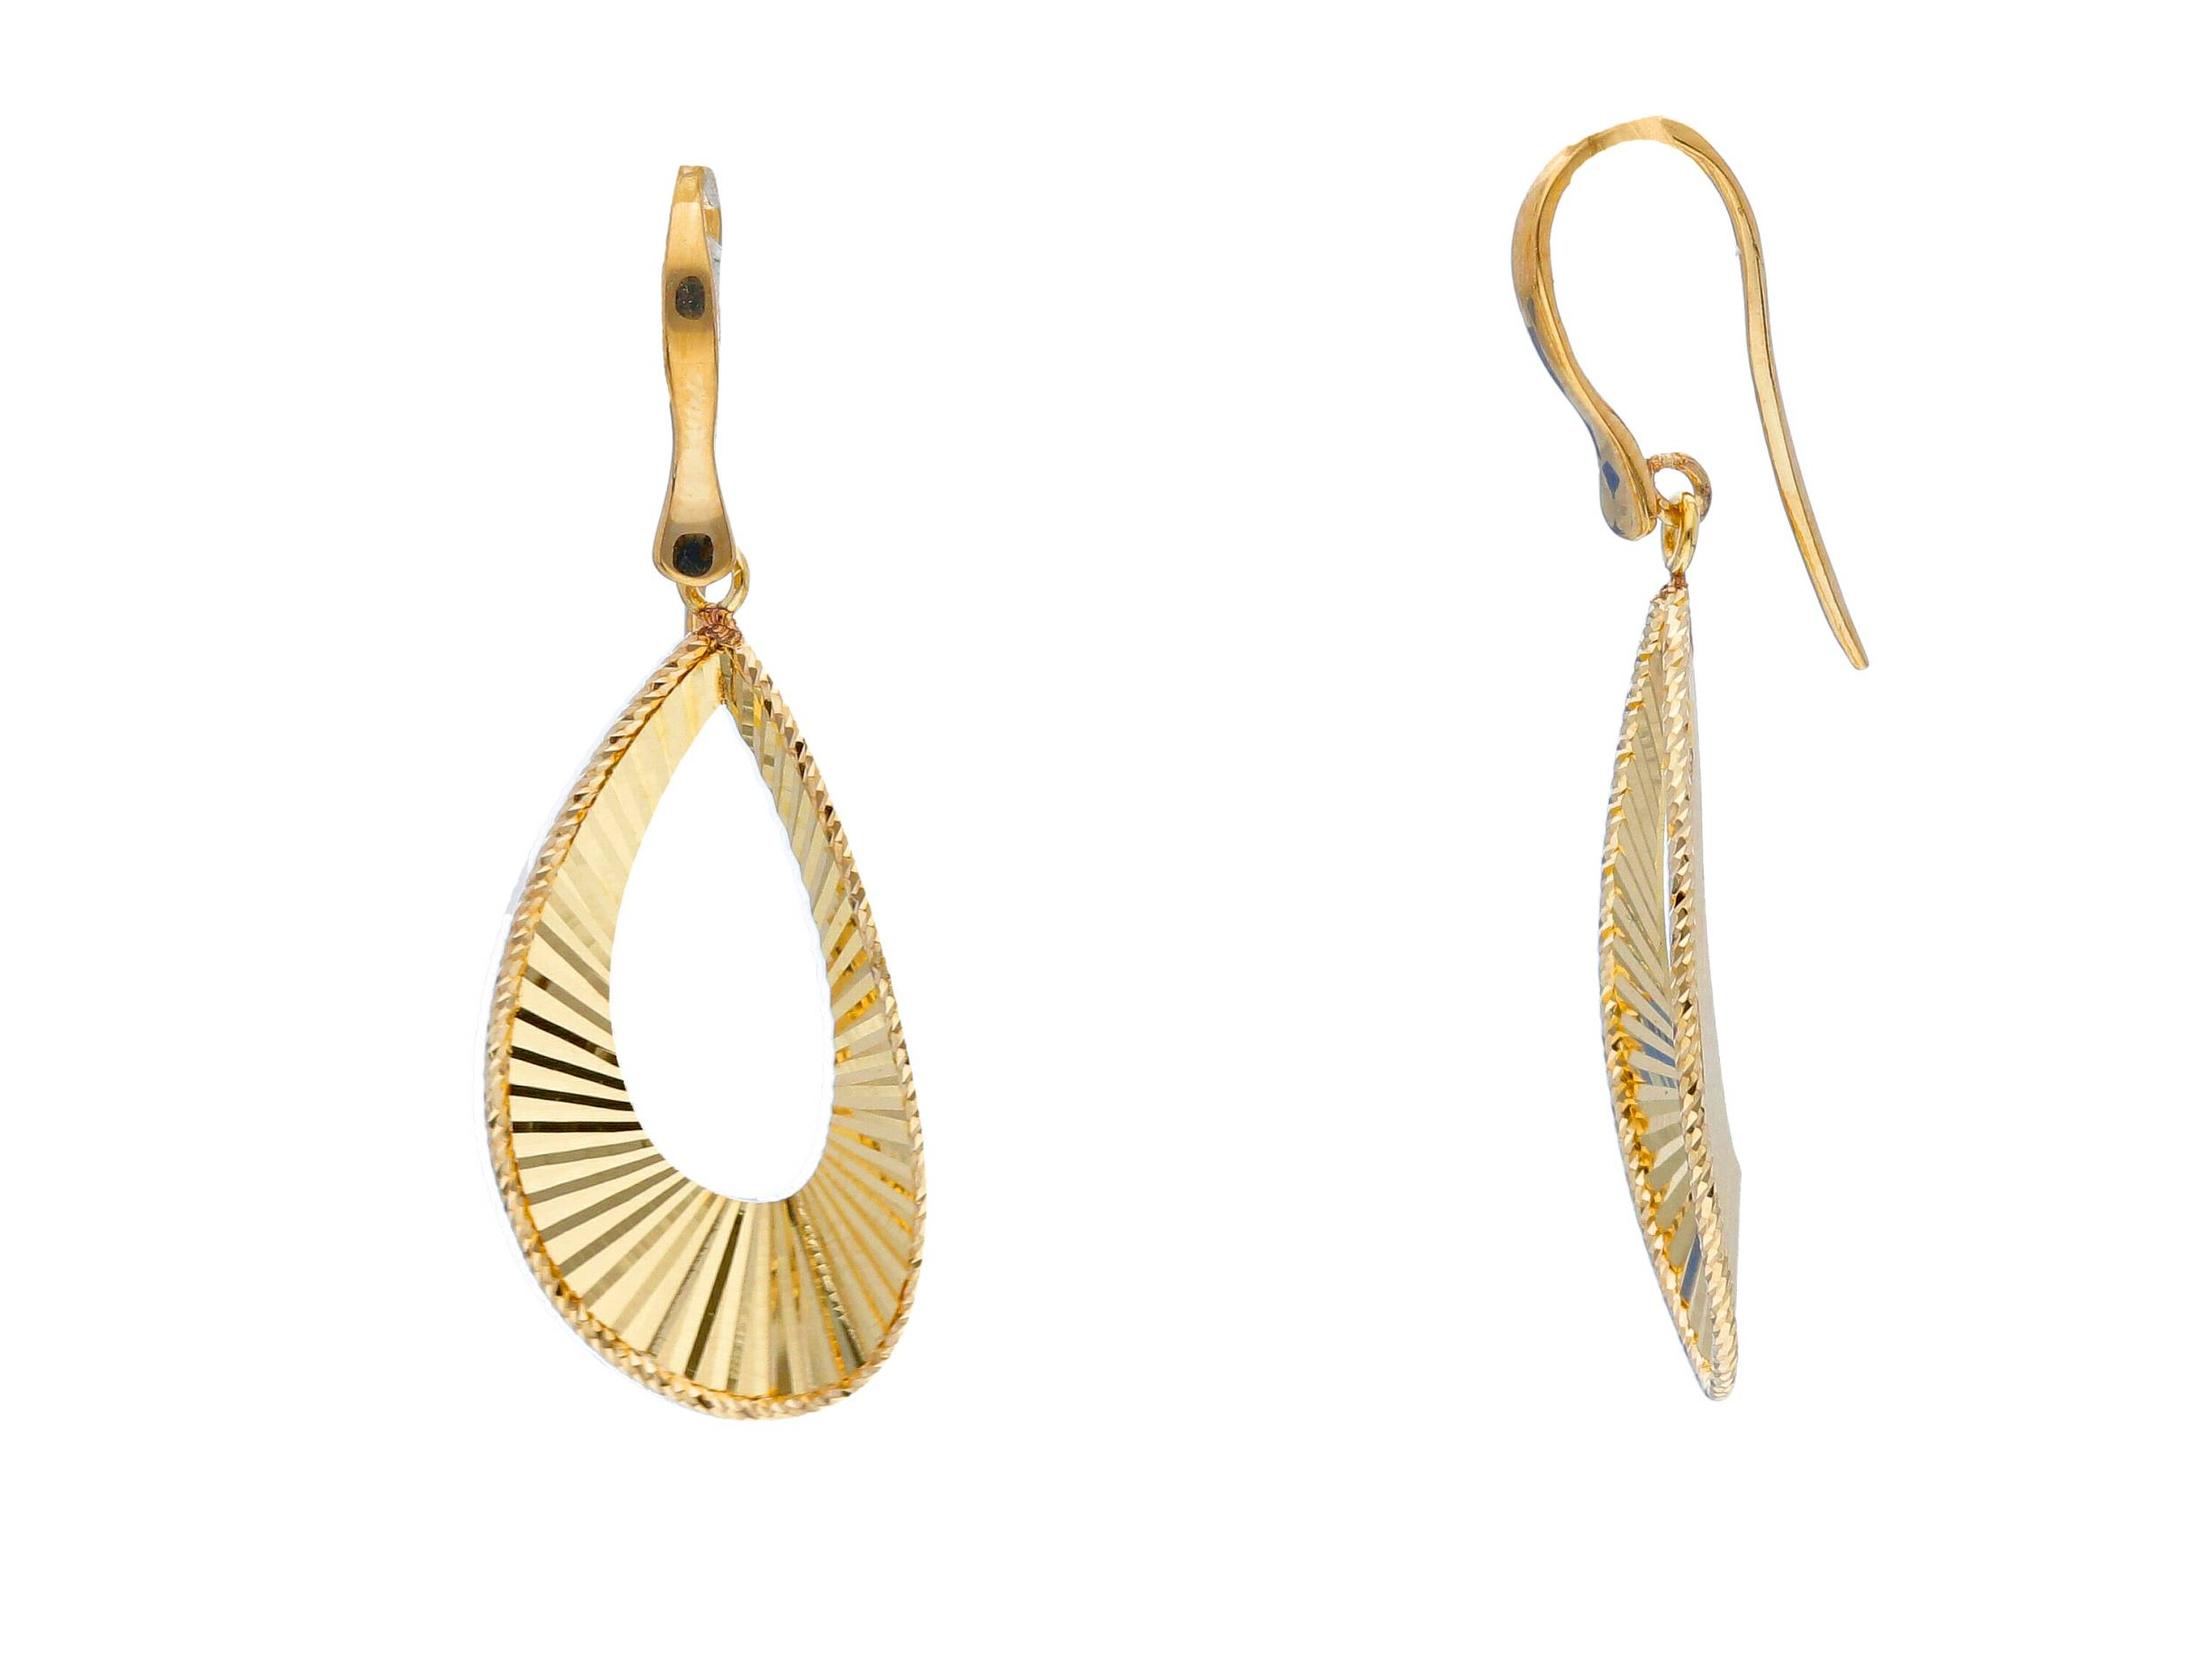 pendientes de gancho oro amarillo - aretes oro originales - gold earrings to buy online - joyeria marga mira